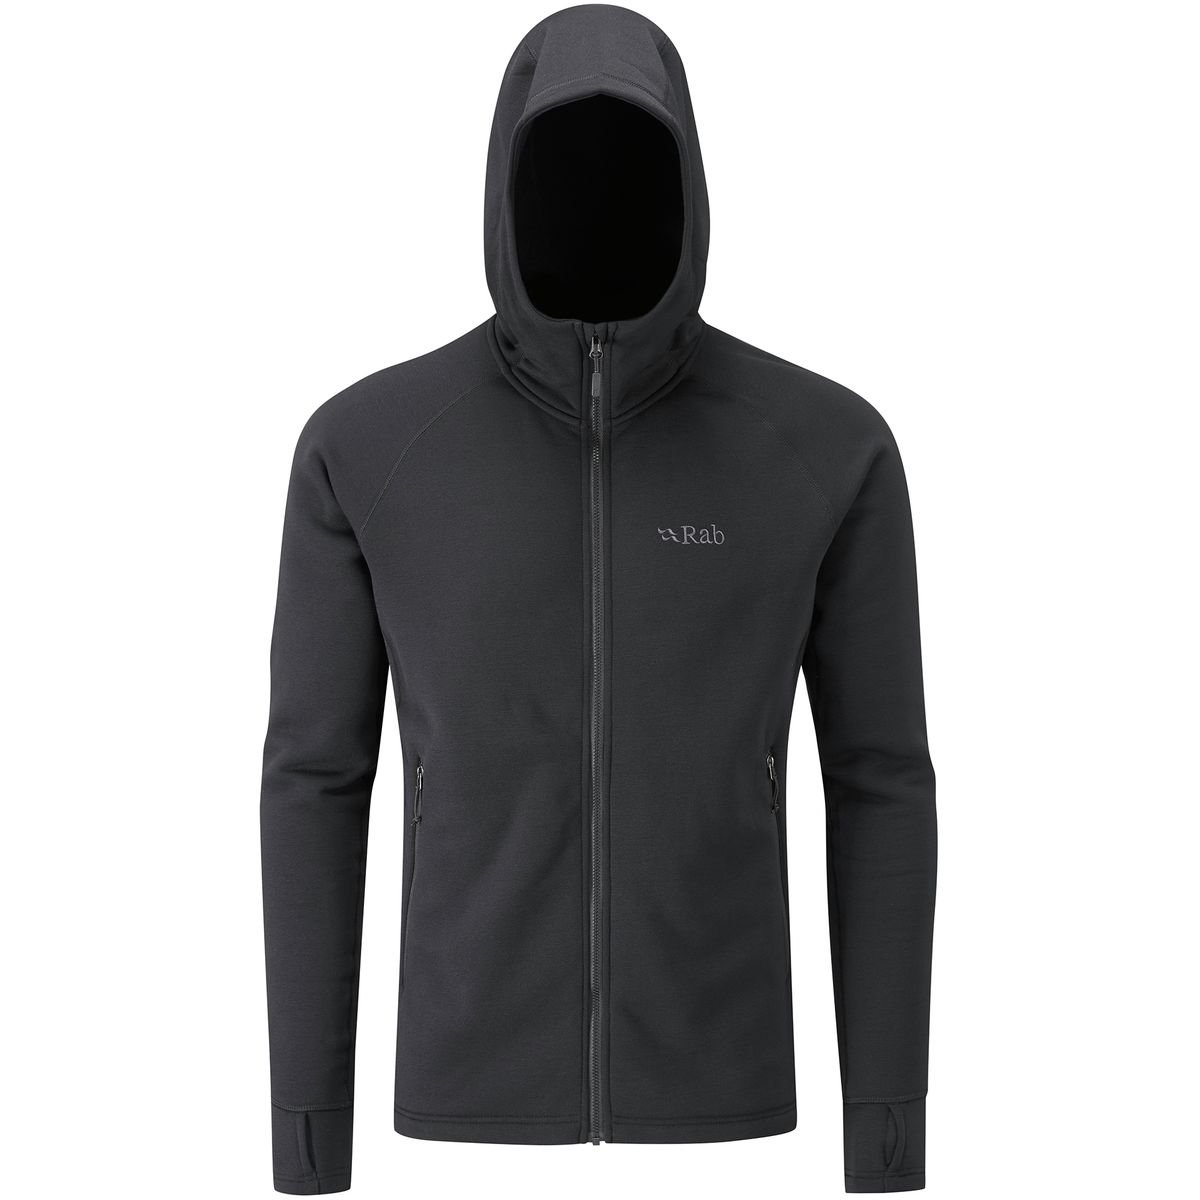 RAB Power Stretch Pro Fleece Hooded Jacket - Men's Black, XL